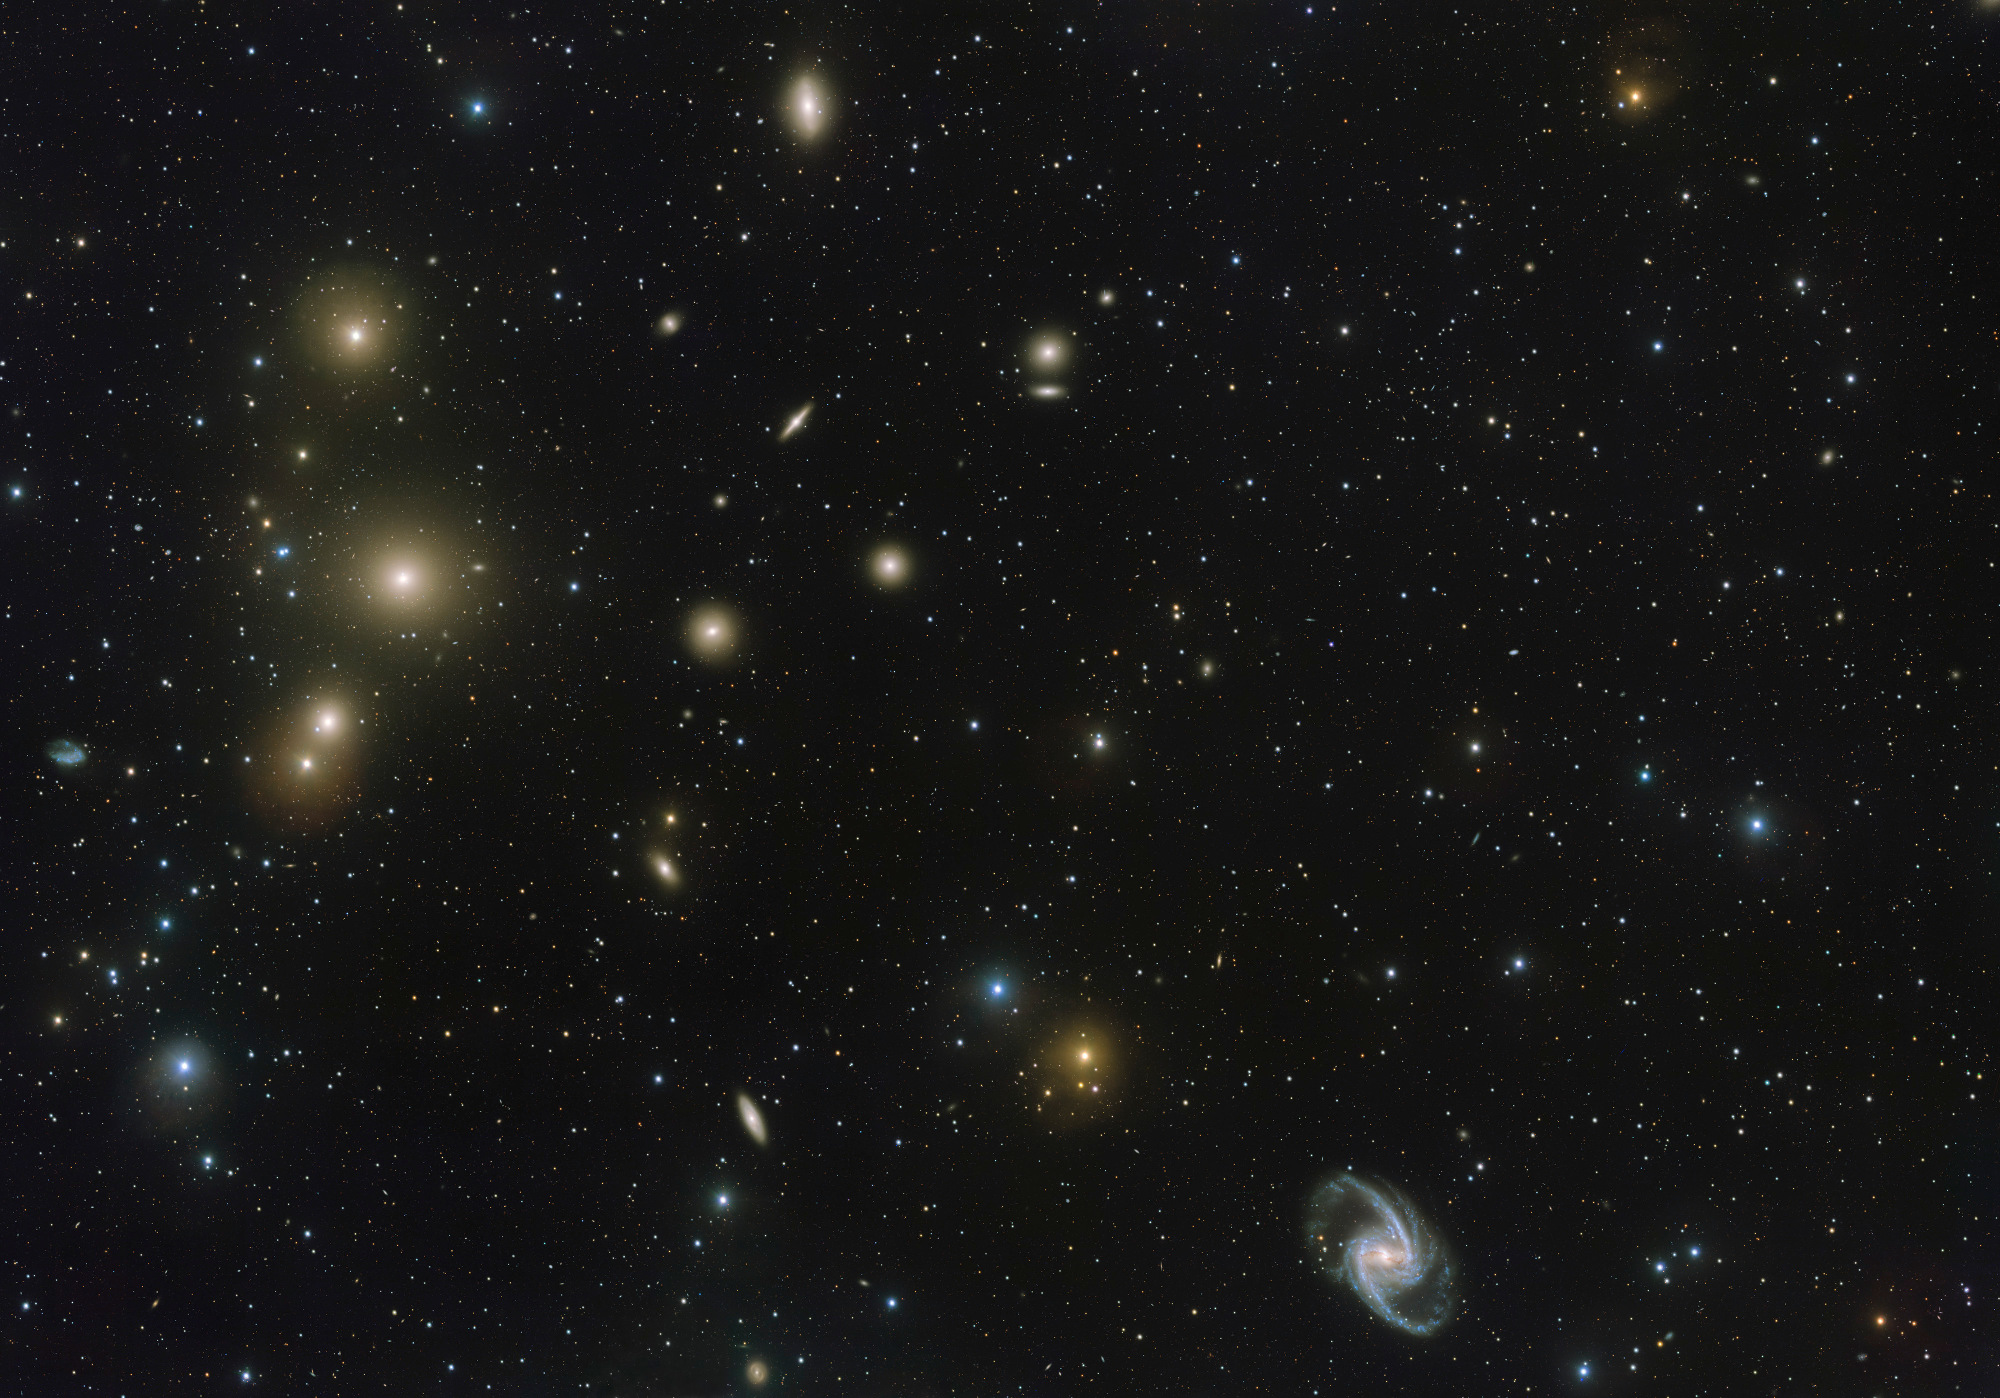 The Fornax Galaxy Cluster is one of the closest of such groupings beyond our Local Group of galaxies. This new VLT Survey Telescope image shows the central part of the cluster in great detail. At the lower-right is the elegant barred-spiral galaxy NGC1365 and to the left the big elliptical NGC1399. Click the image for a full-size version. Image credit: ESO. Acknowledgement: Aniello Grado and Luca Limatola.